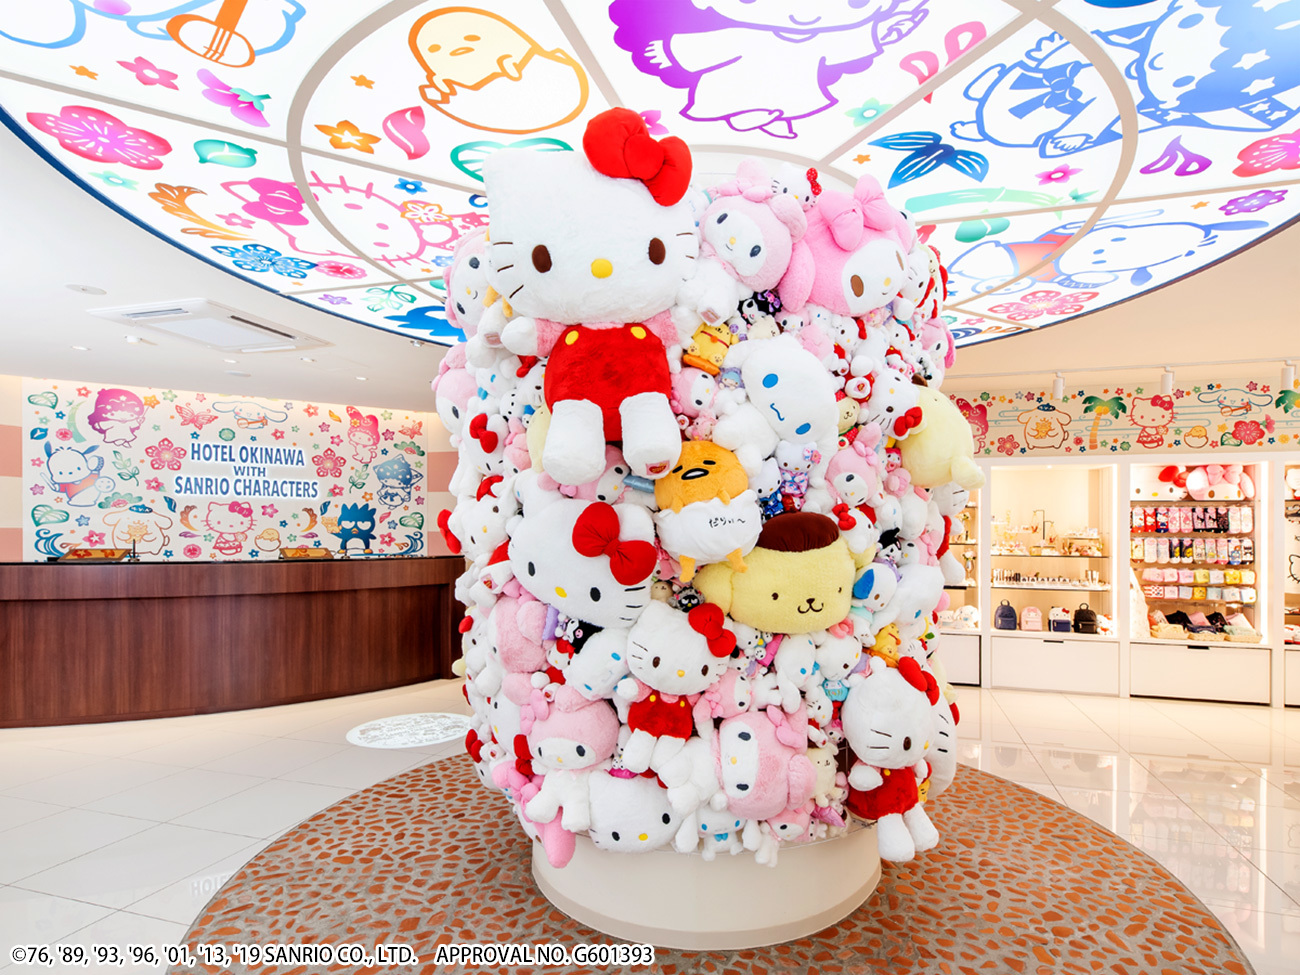 Sanrio characters room [the prior settlement, cancellation impossibility]